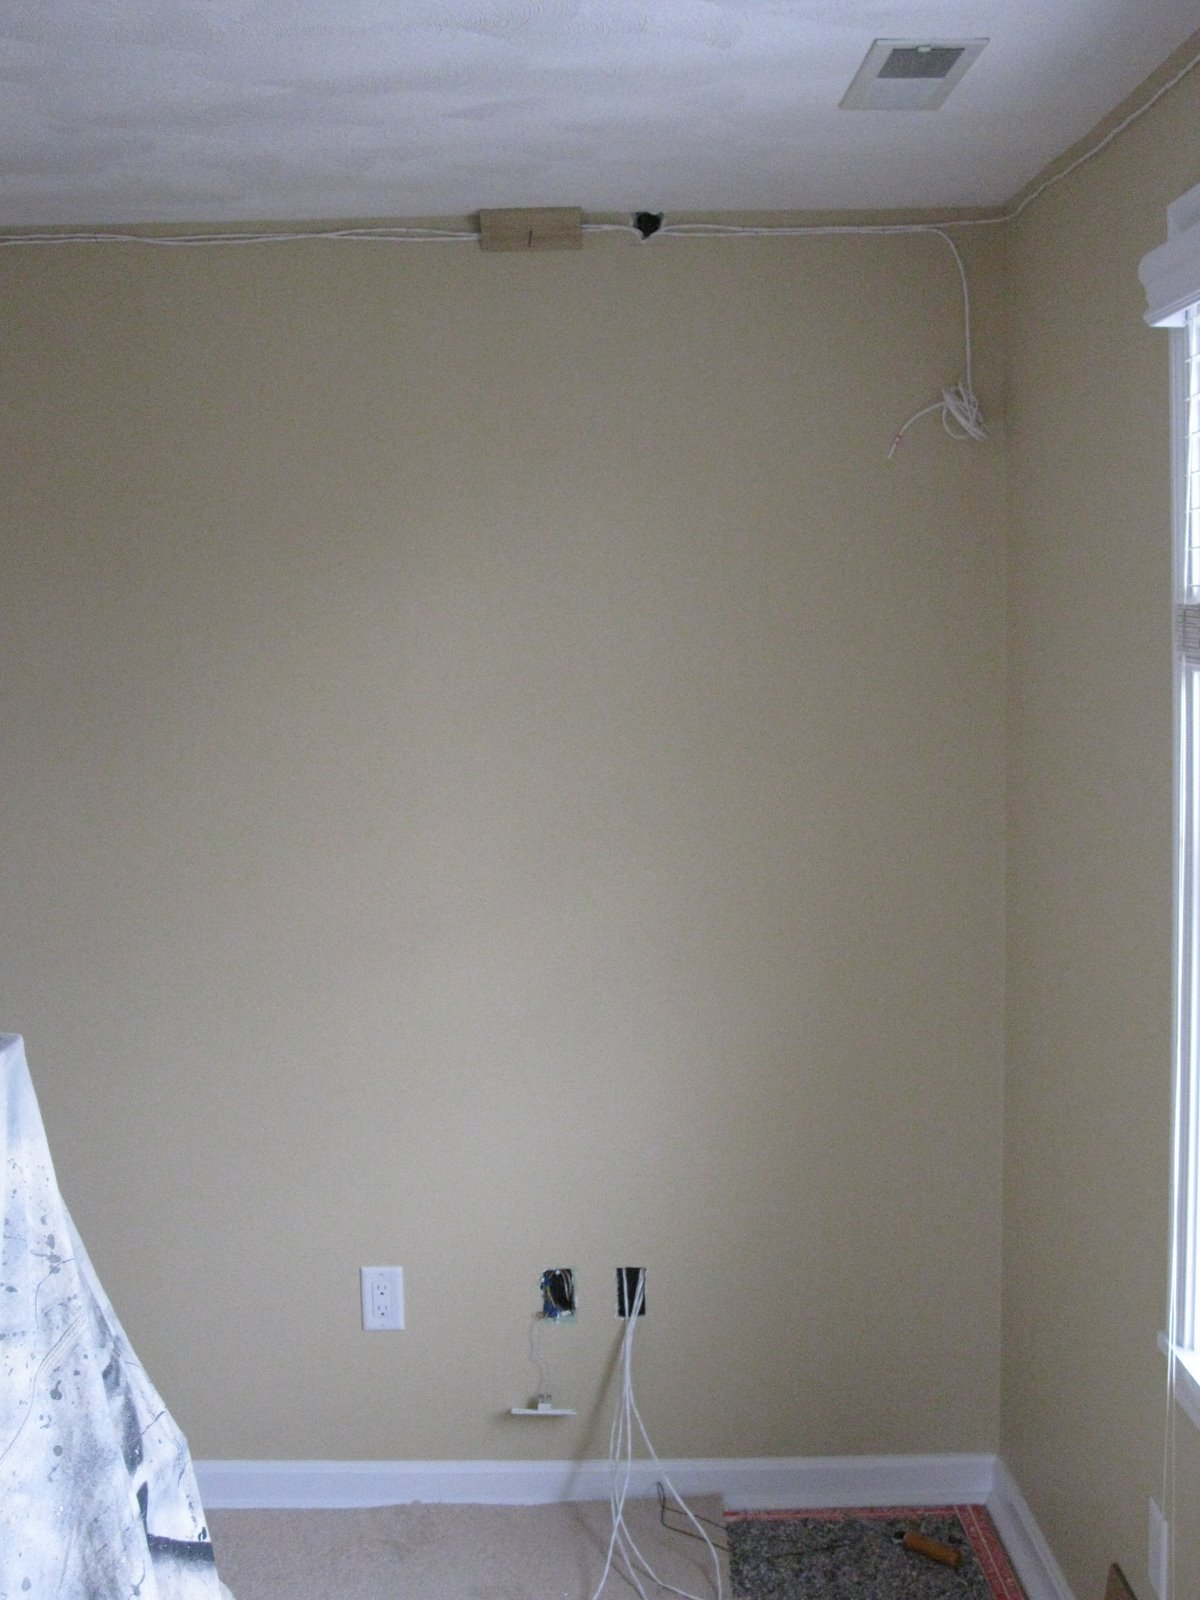 Floor Wire Molding How To Install Speaker Wire Behind Crown Molding A Concord Carpenter